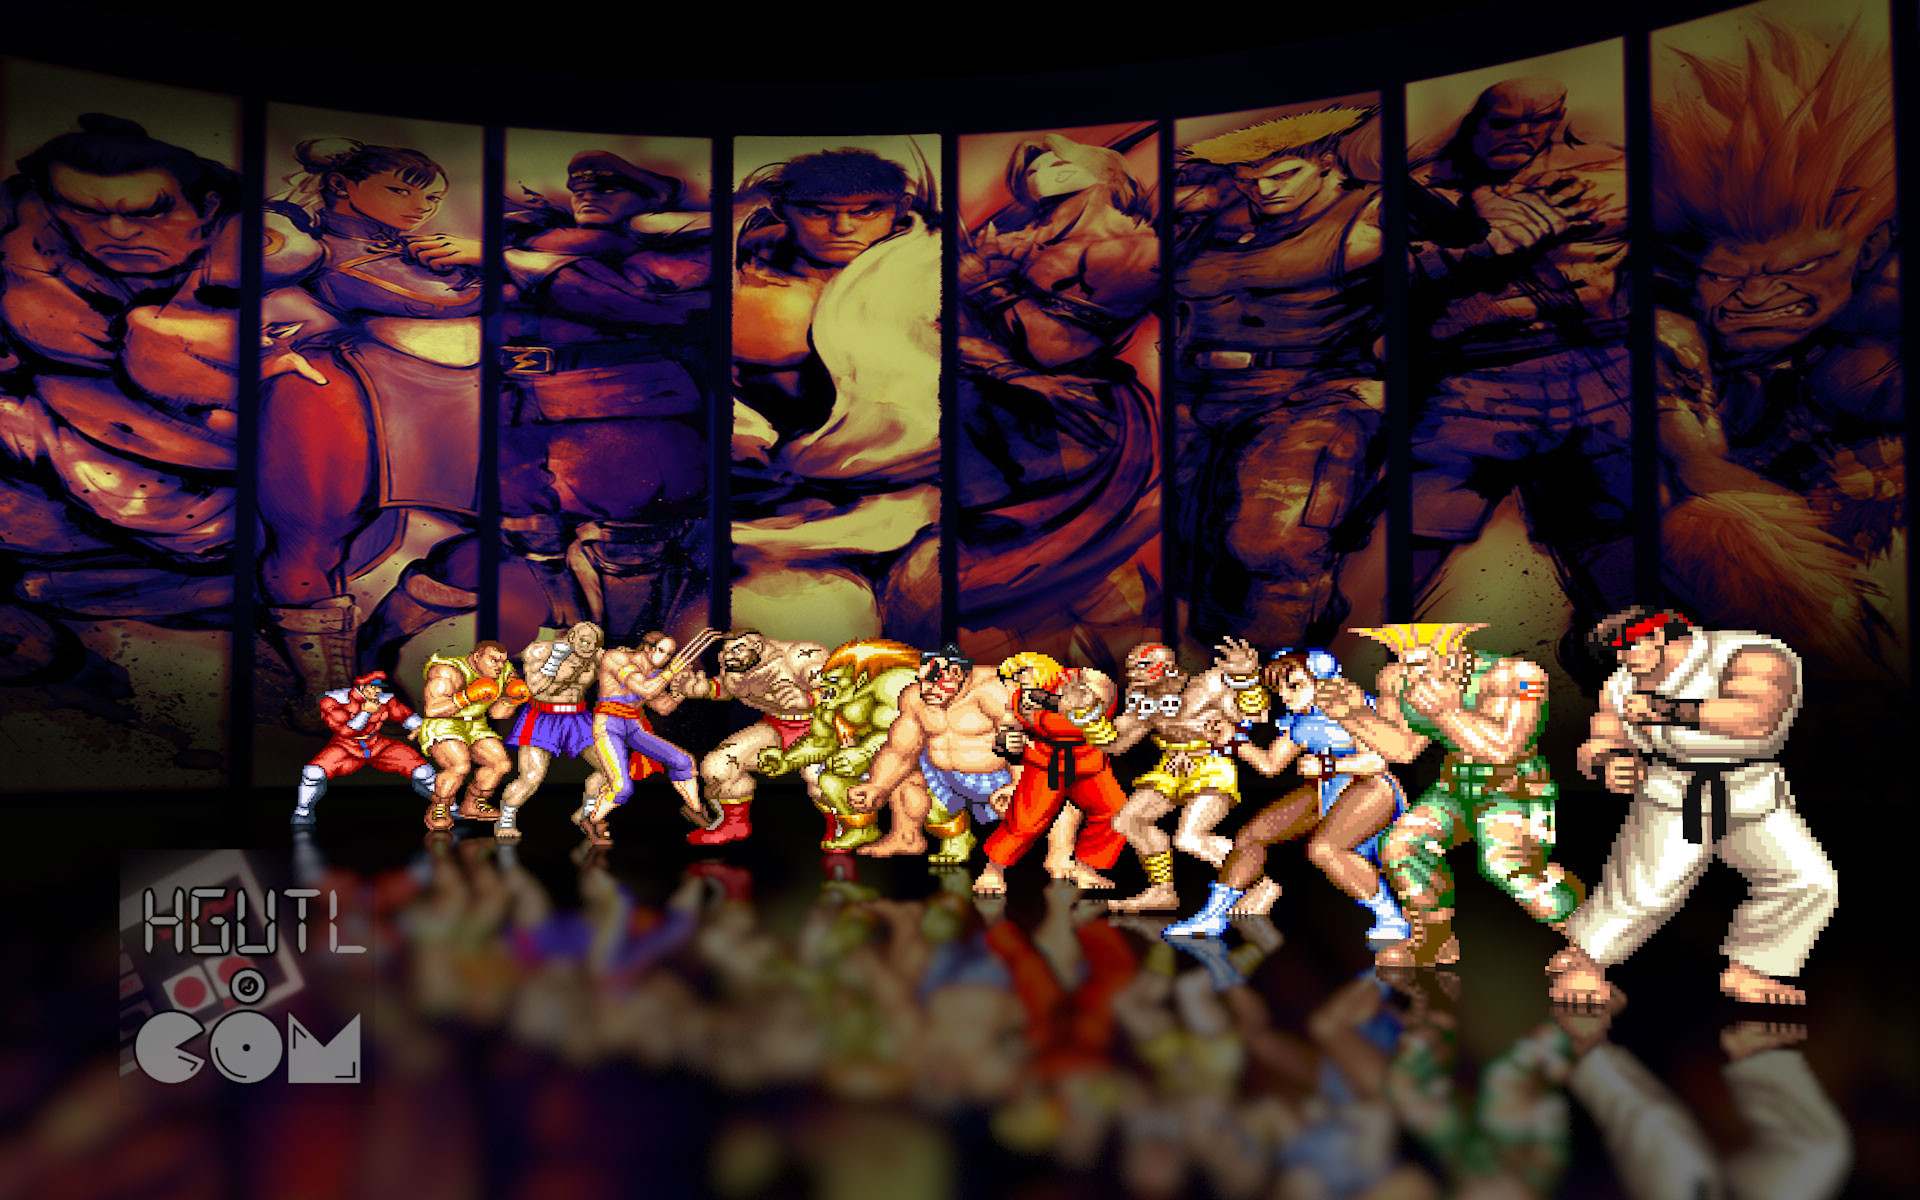 Street Fighter 4 Wallpapers: Street Fighter 4 Wallpaper (62+ Images